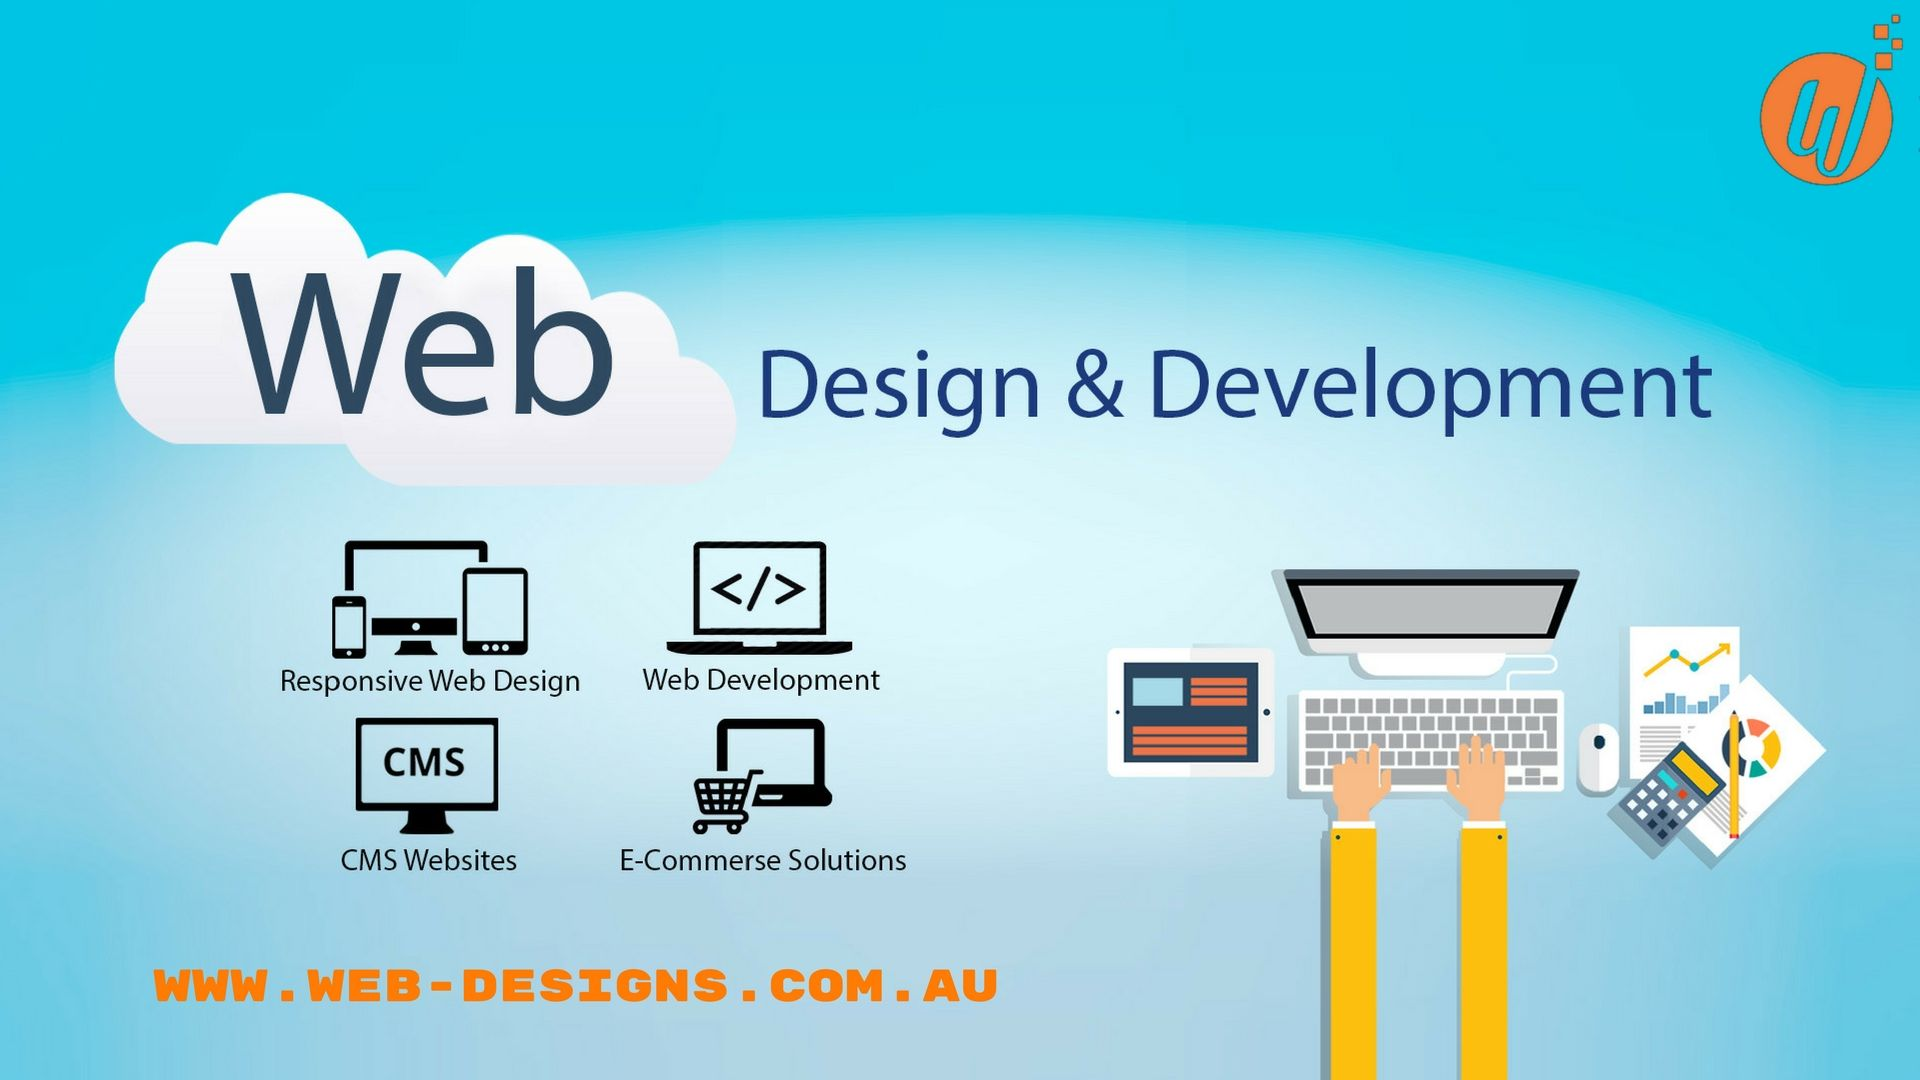 Web-Designs- Best Web Development Company in Melbourne offers all ...